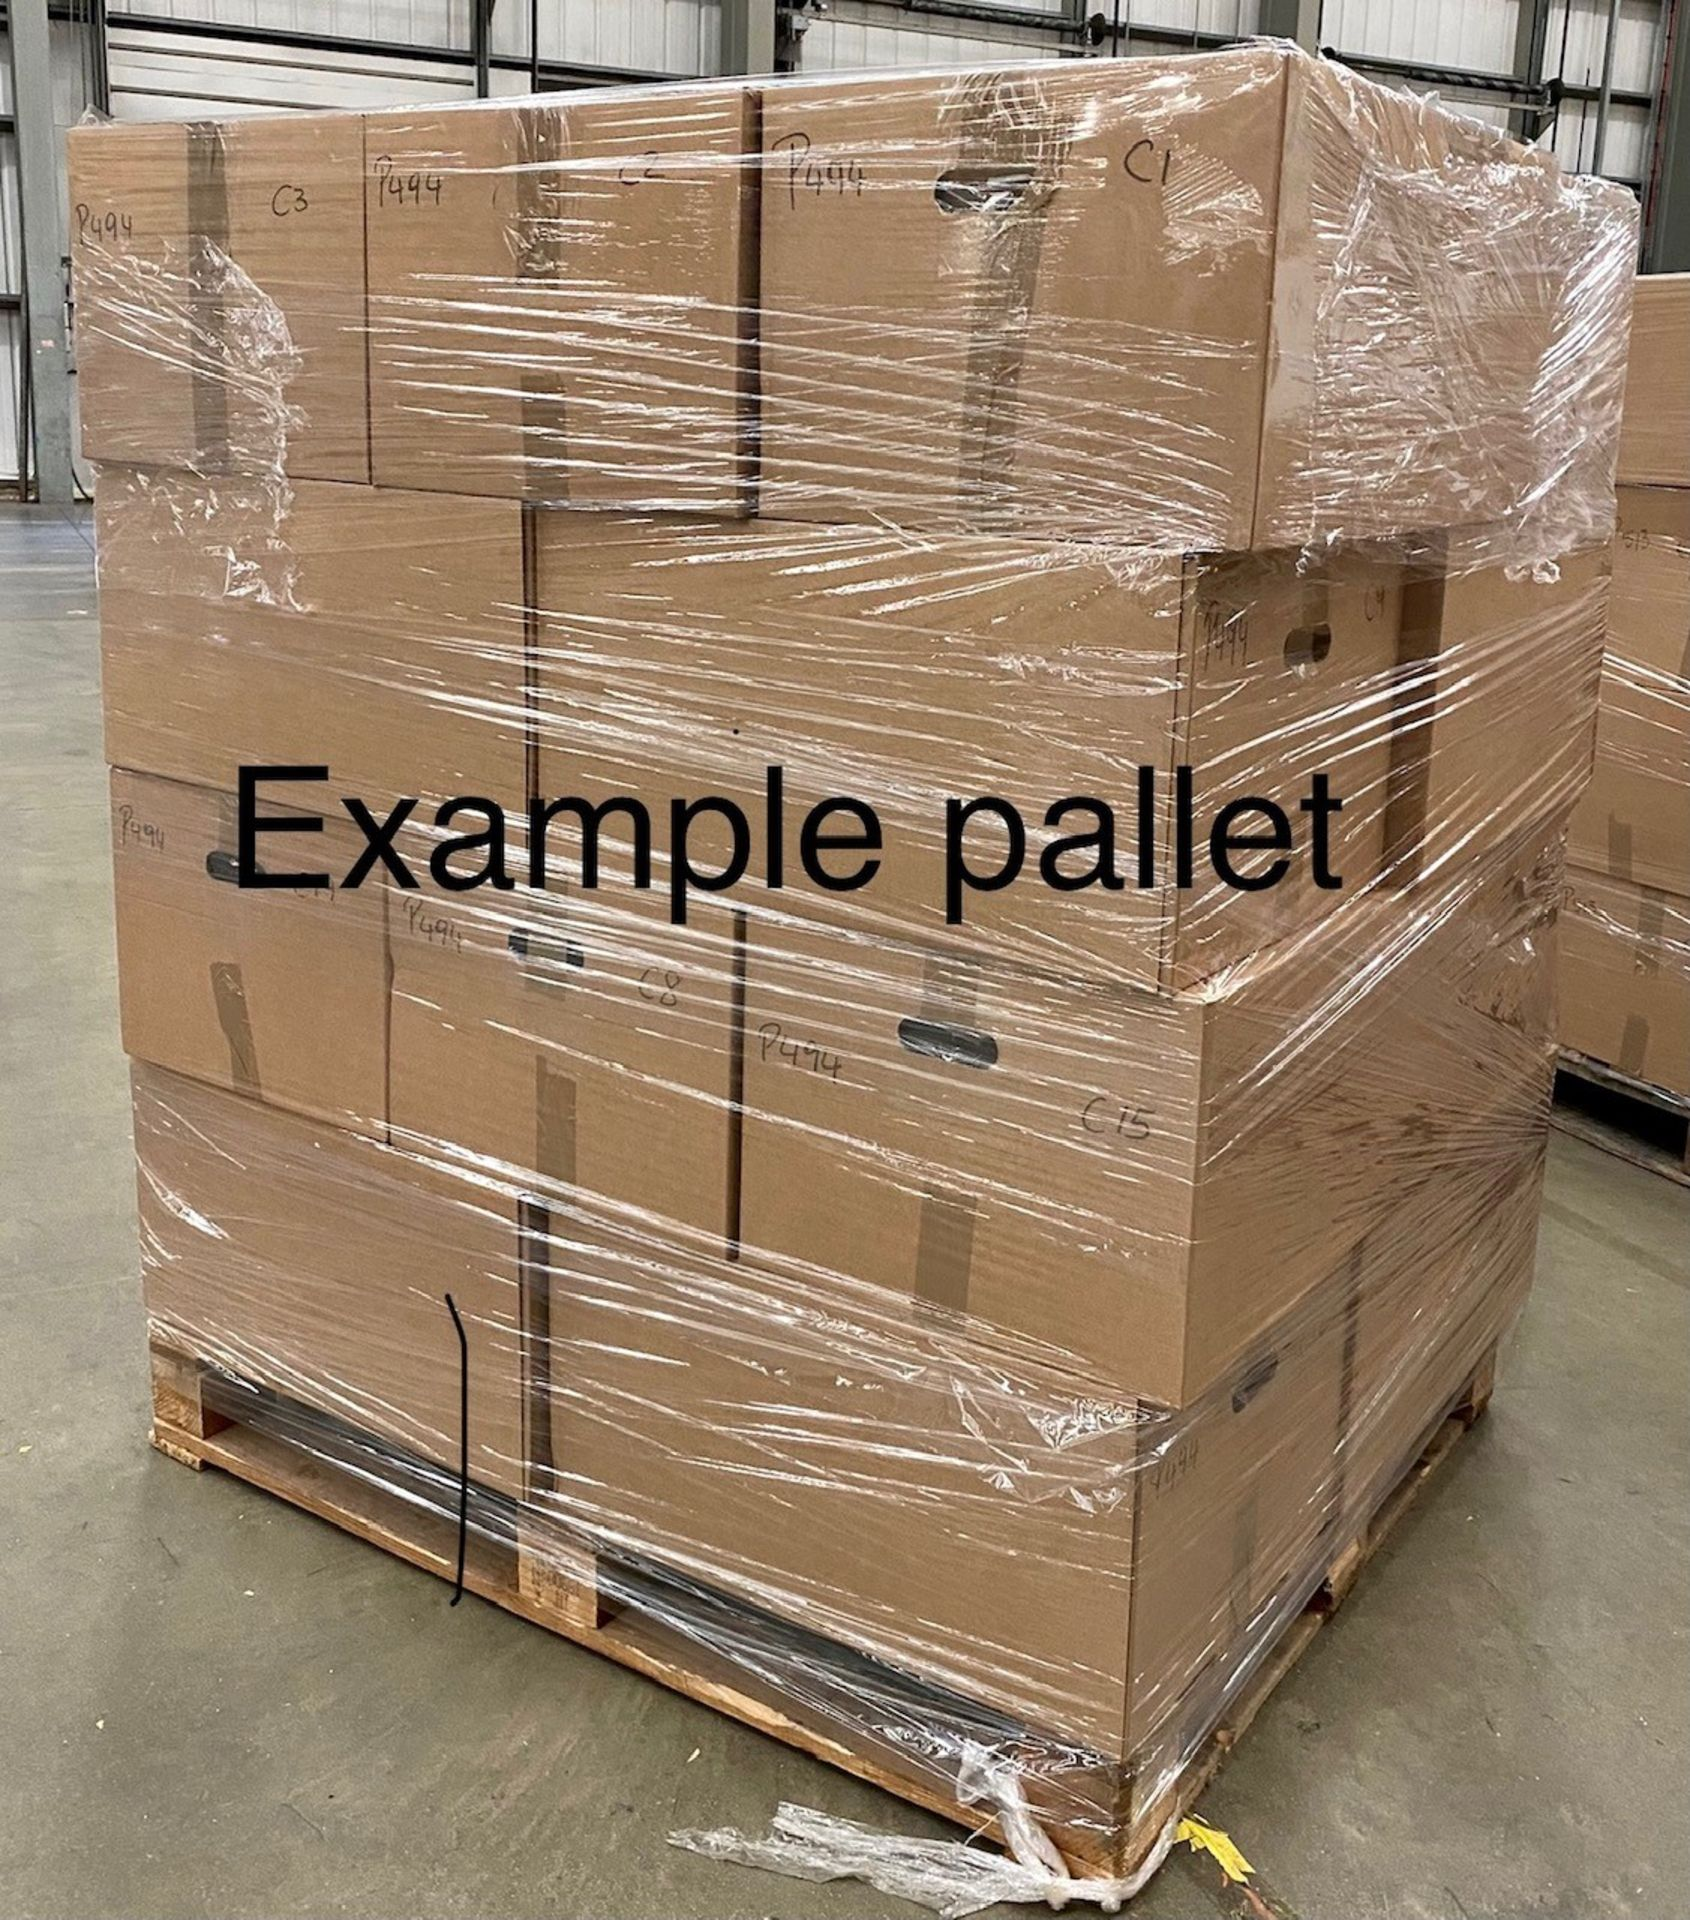 1 x mixed pallet = 359 items of Grade A M&S Womenswear Clothing. Total RRP £6599.00 - Image 11 of 11